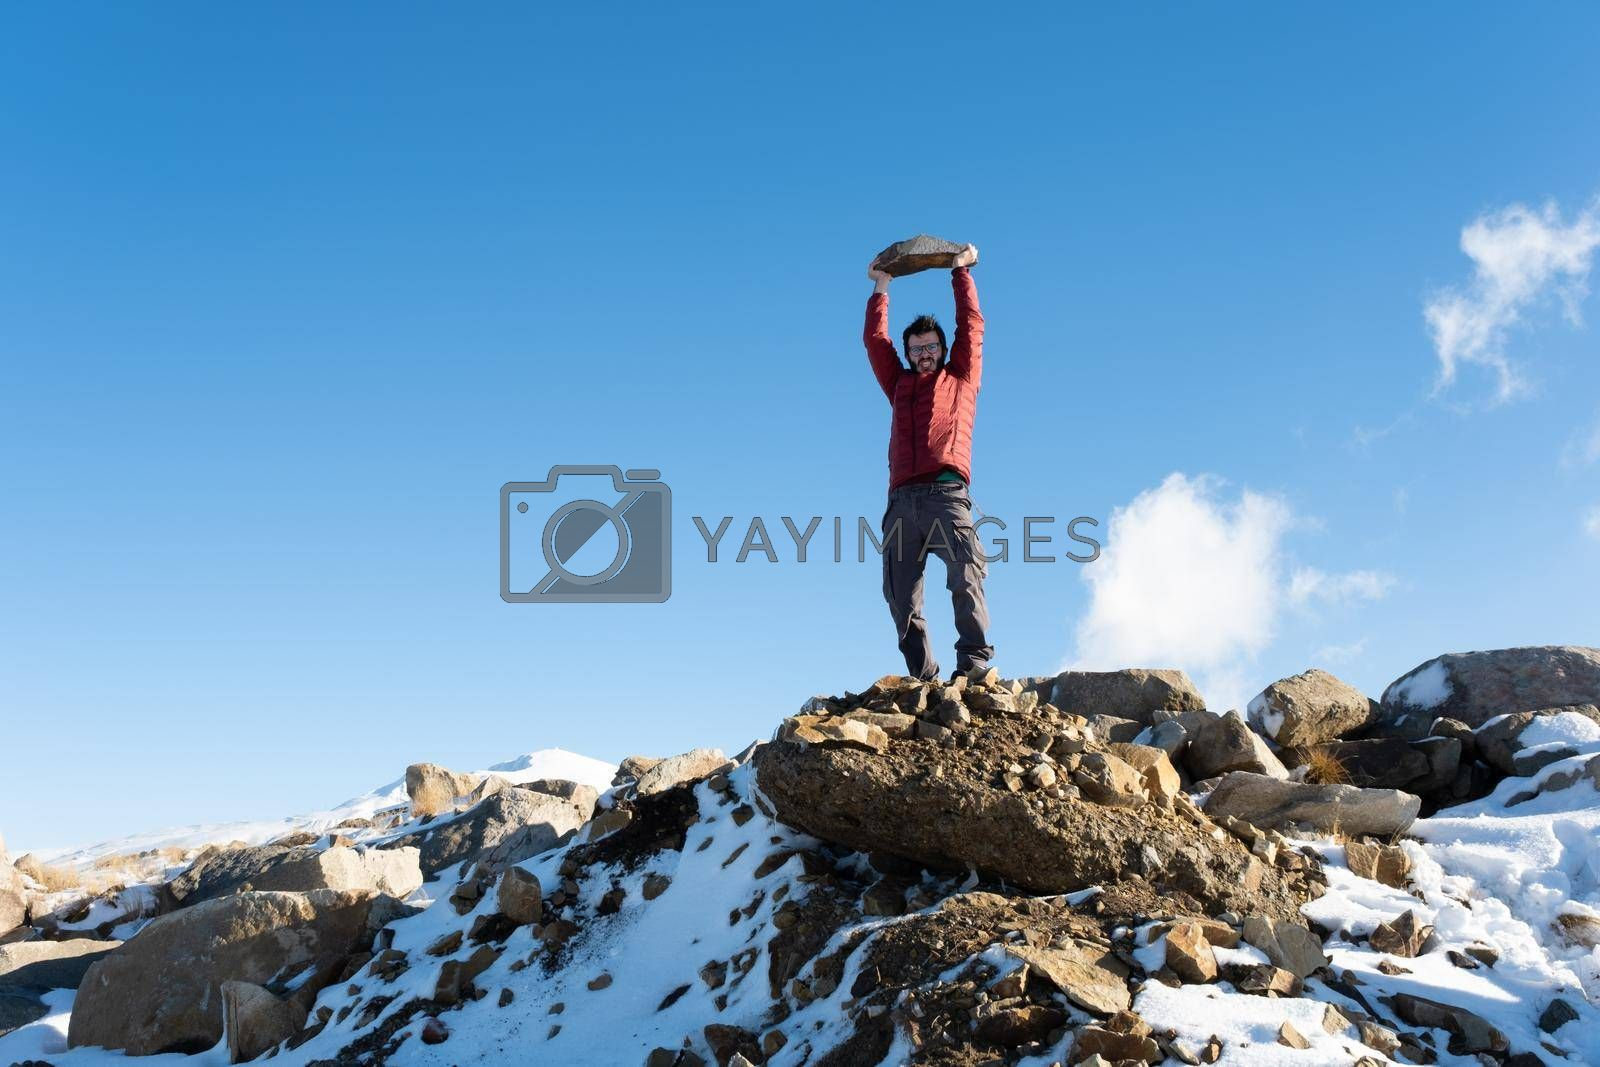 It depicts a man with red jacket standing on the mountain and showing his success concept